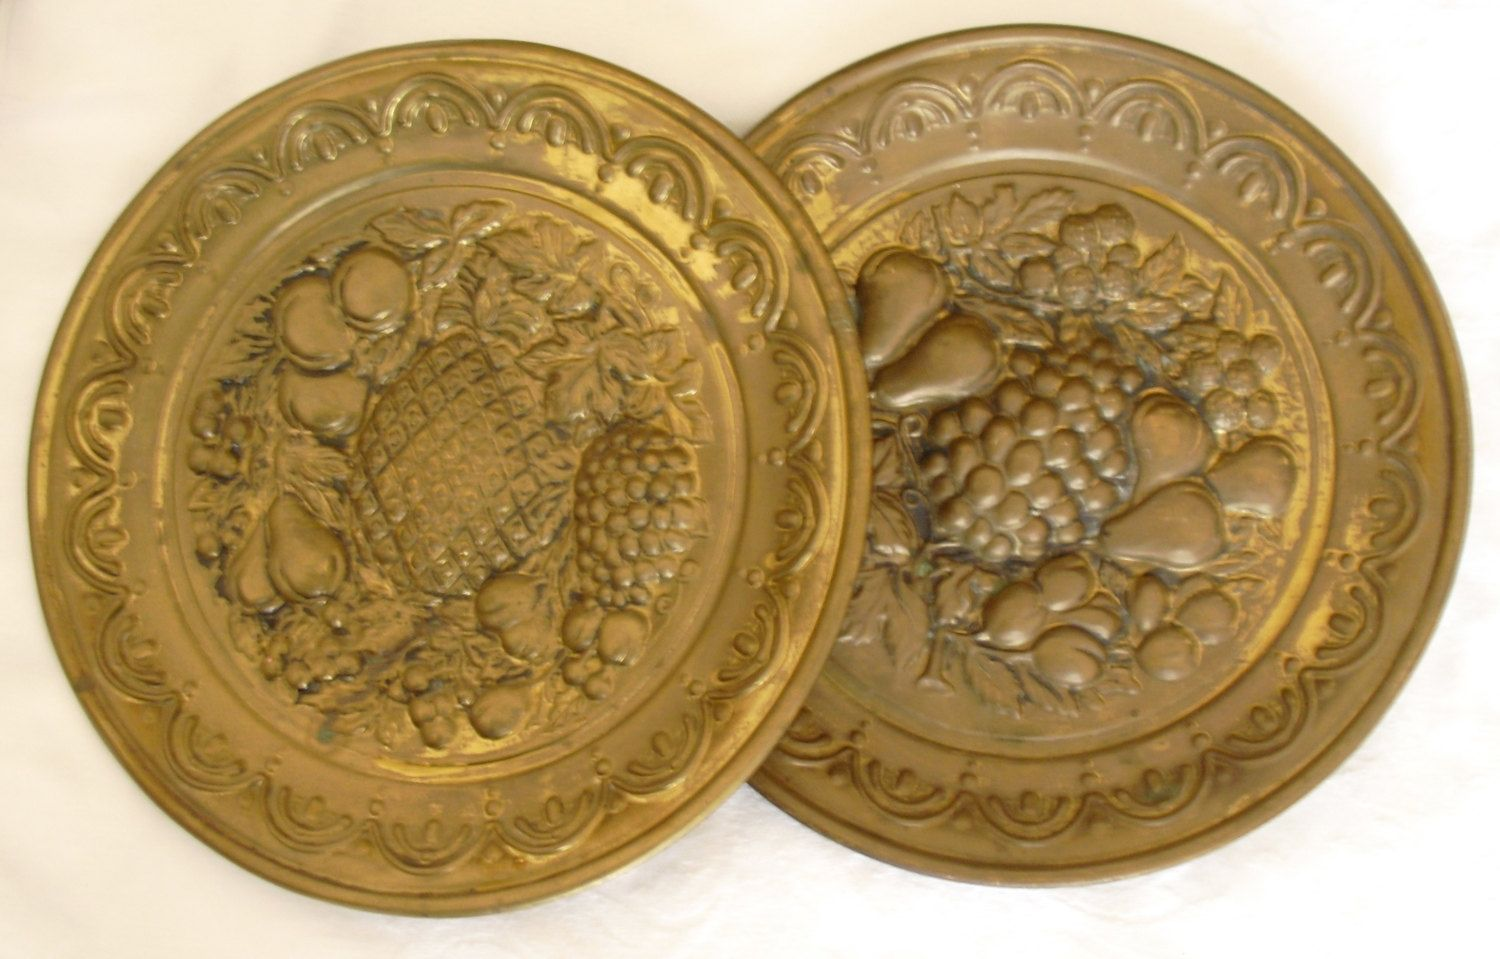 Vintage Brass Wall Plates, Decorative Wall Hangings, Vintage Brass ...